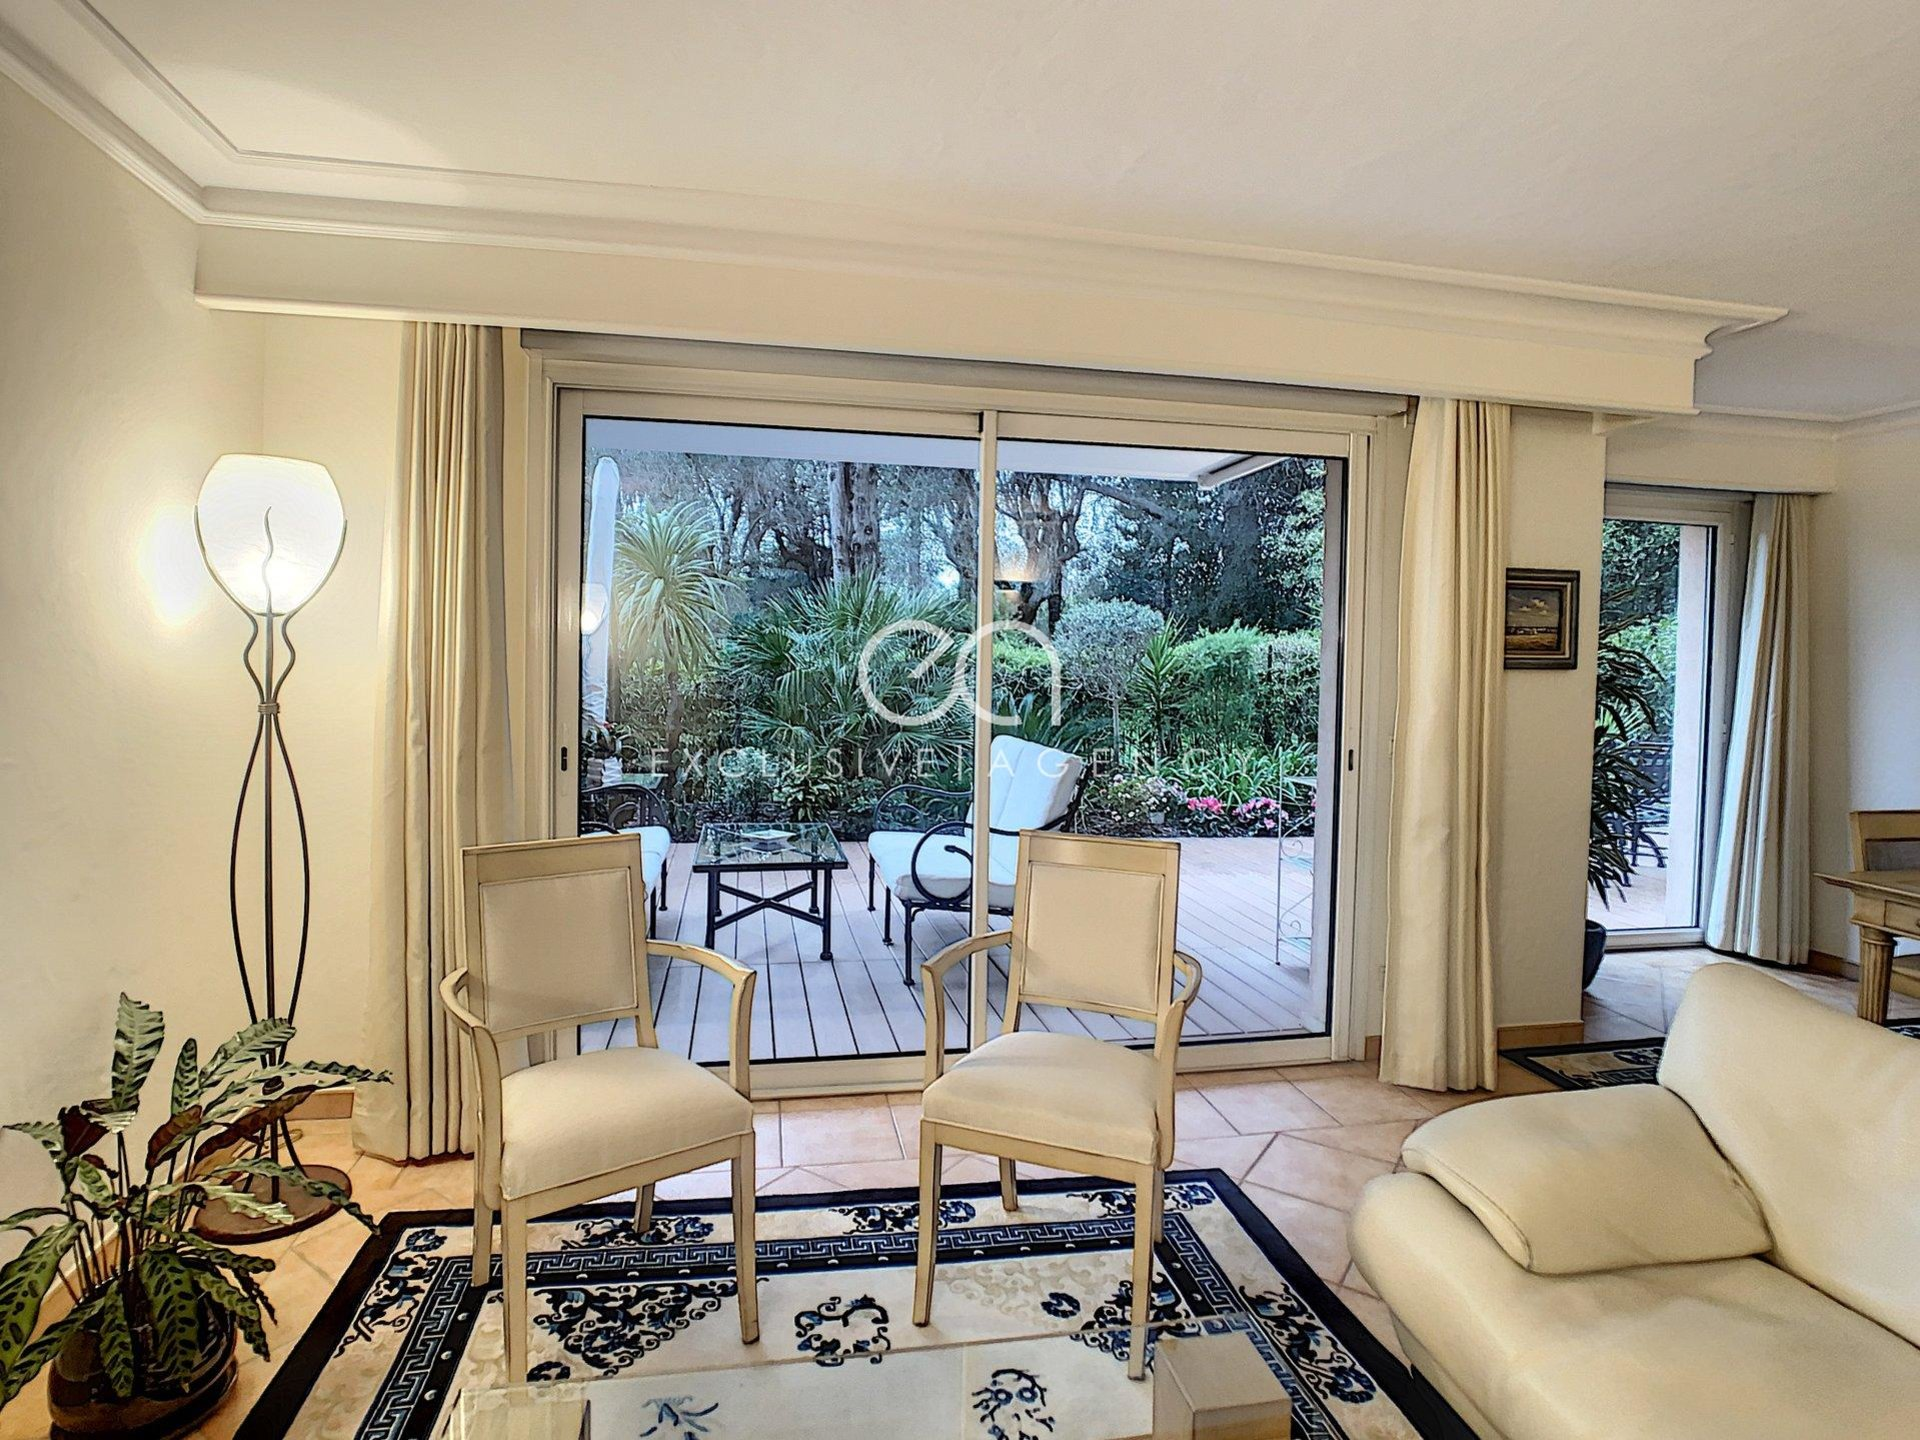 Cannes for sale 3-bedroom apartment 101sqm superb garden and terrace 120sqm